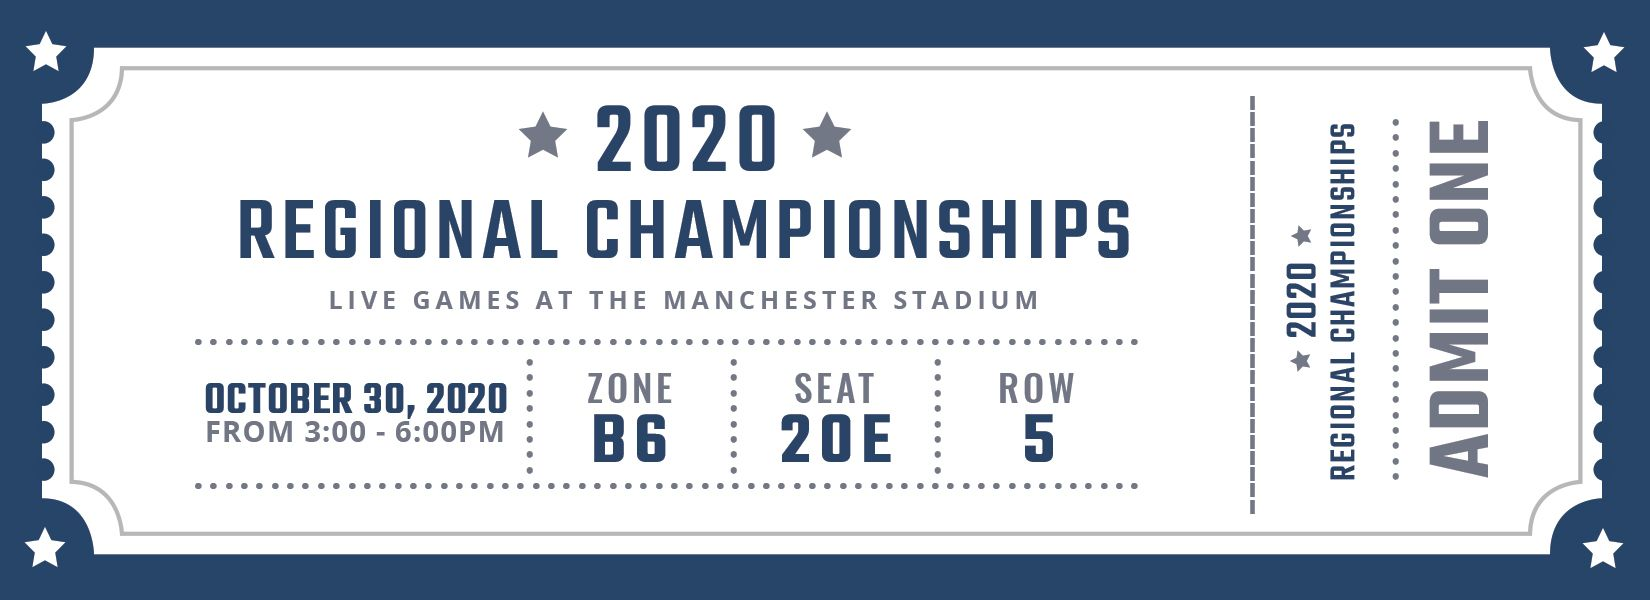 Free Blank Sports Ticket Ticket template, Manchester